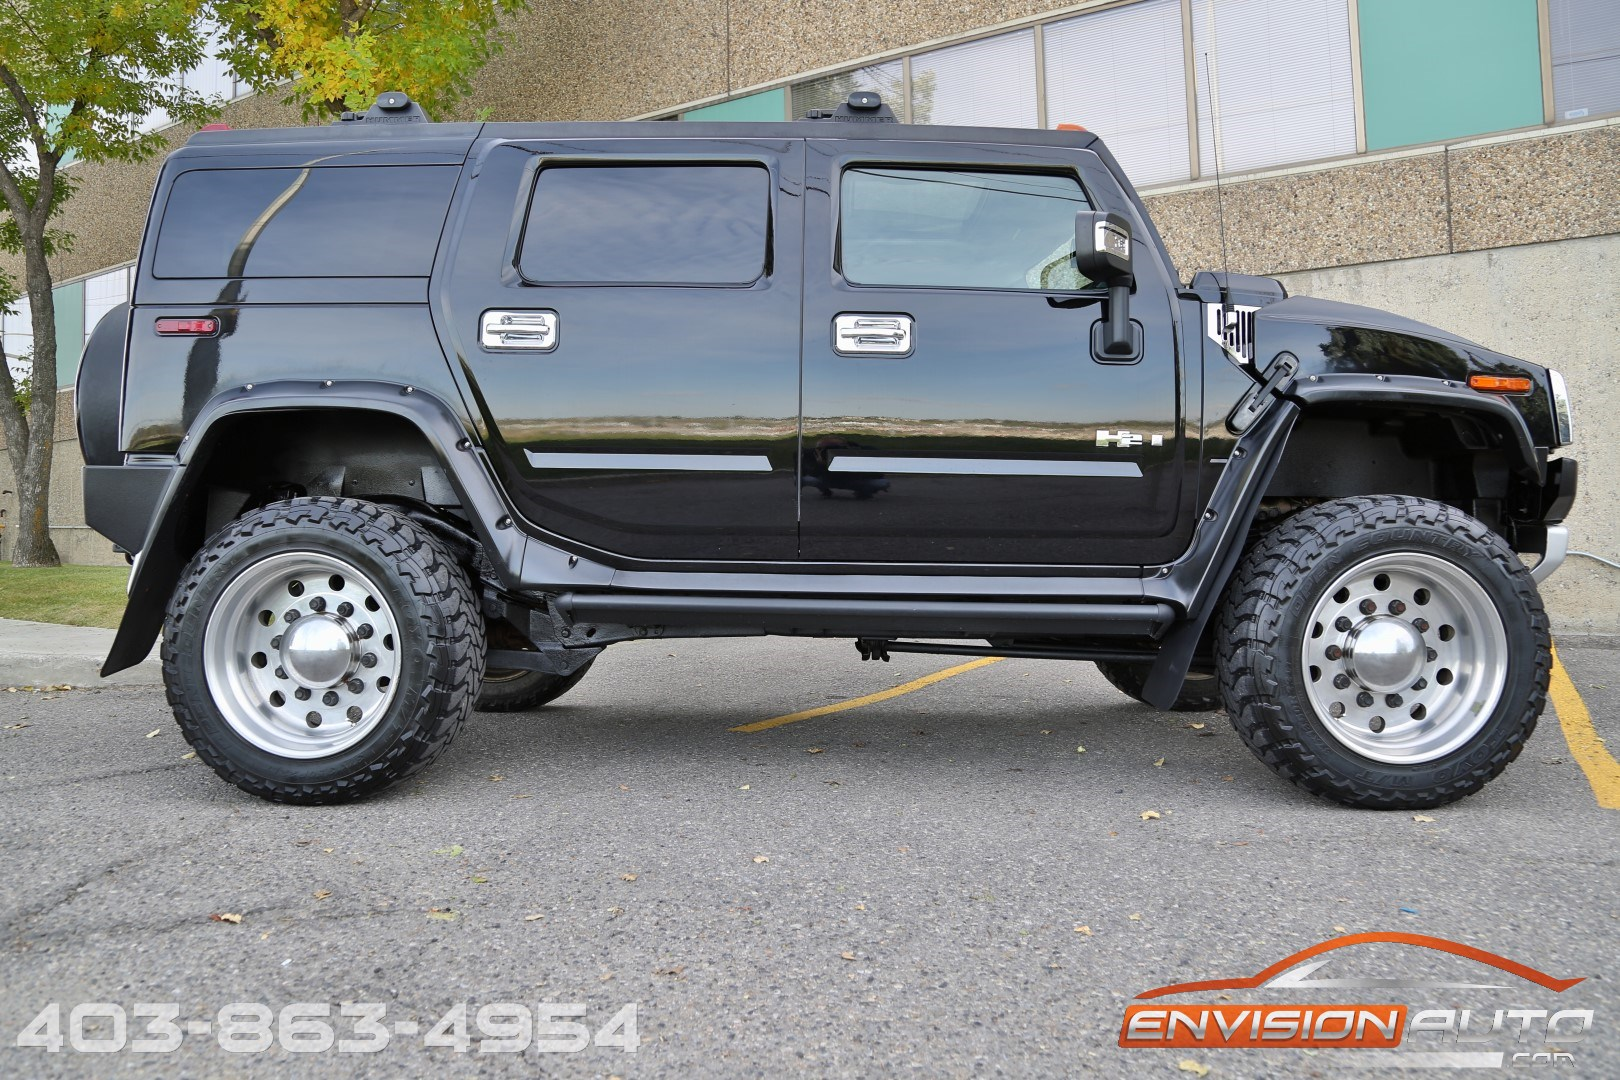 6 Inch Lift Jeep Wrangler >> 2008 H2 Hummer SUV – HUGE 6in Lift – 37in Tires – Flares - Envision Auto